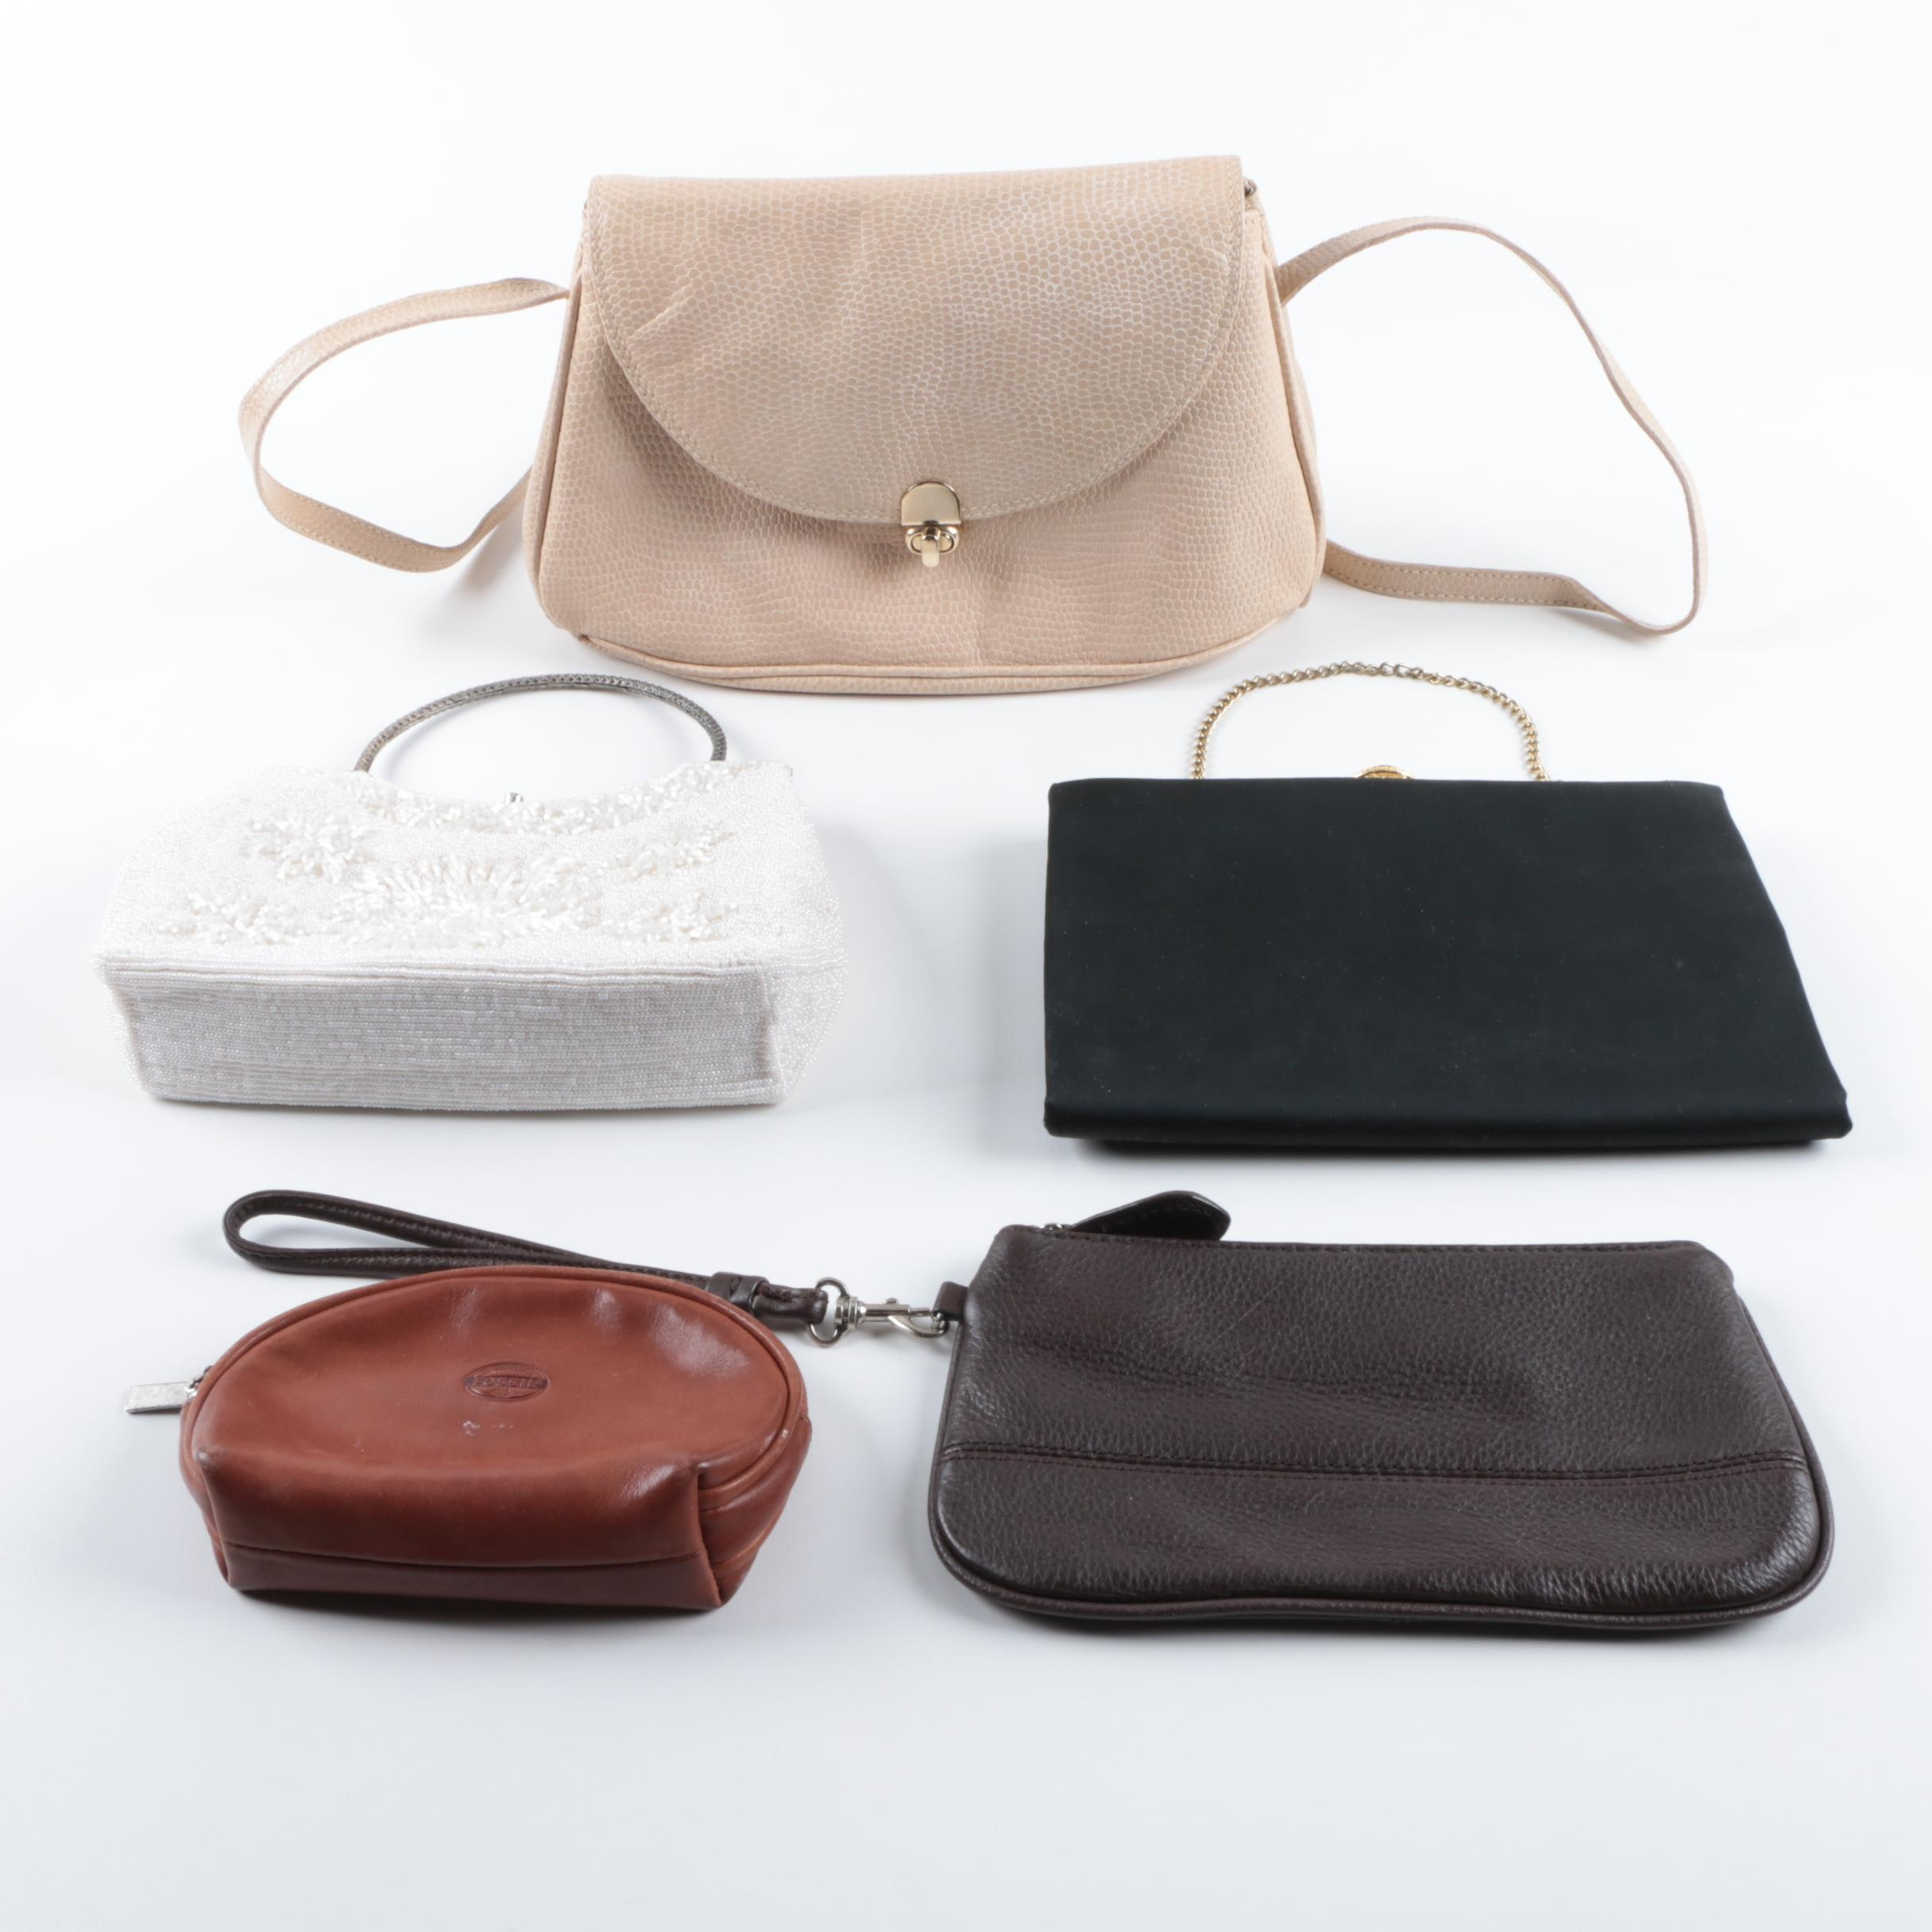 Leather and Evening Handbags Including Vintage Bonwit Teller